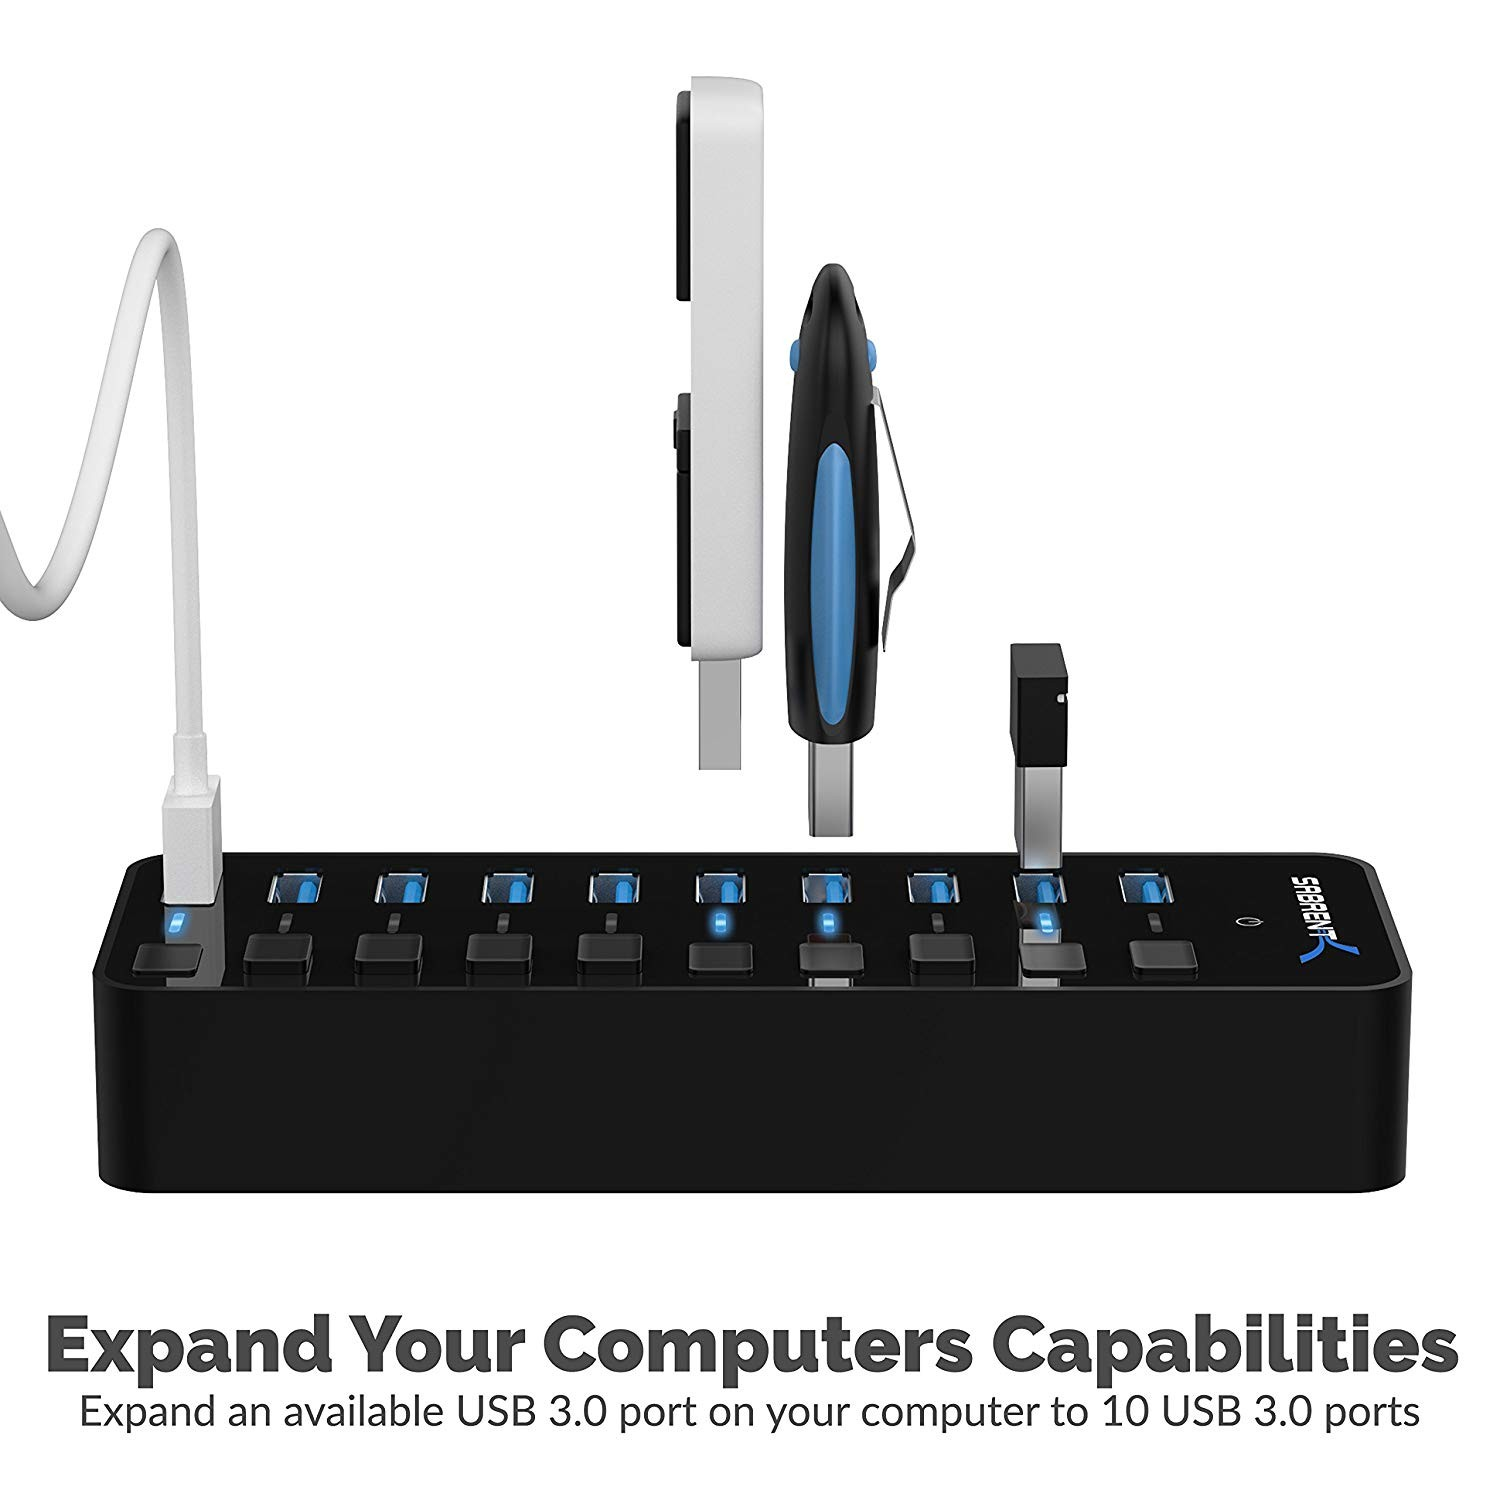 Sabrent 10-Port 60W USB 3.0 Hub with Individual Power Switches and LEDs includes 60W 12V/5A power adapter - Black, HB-BU10